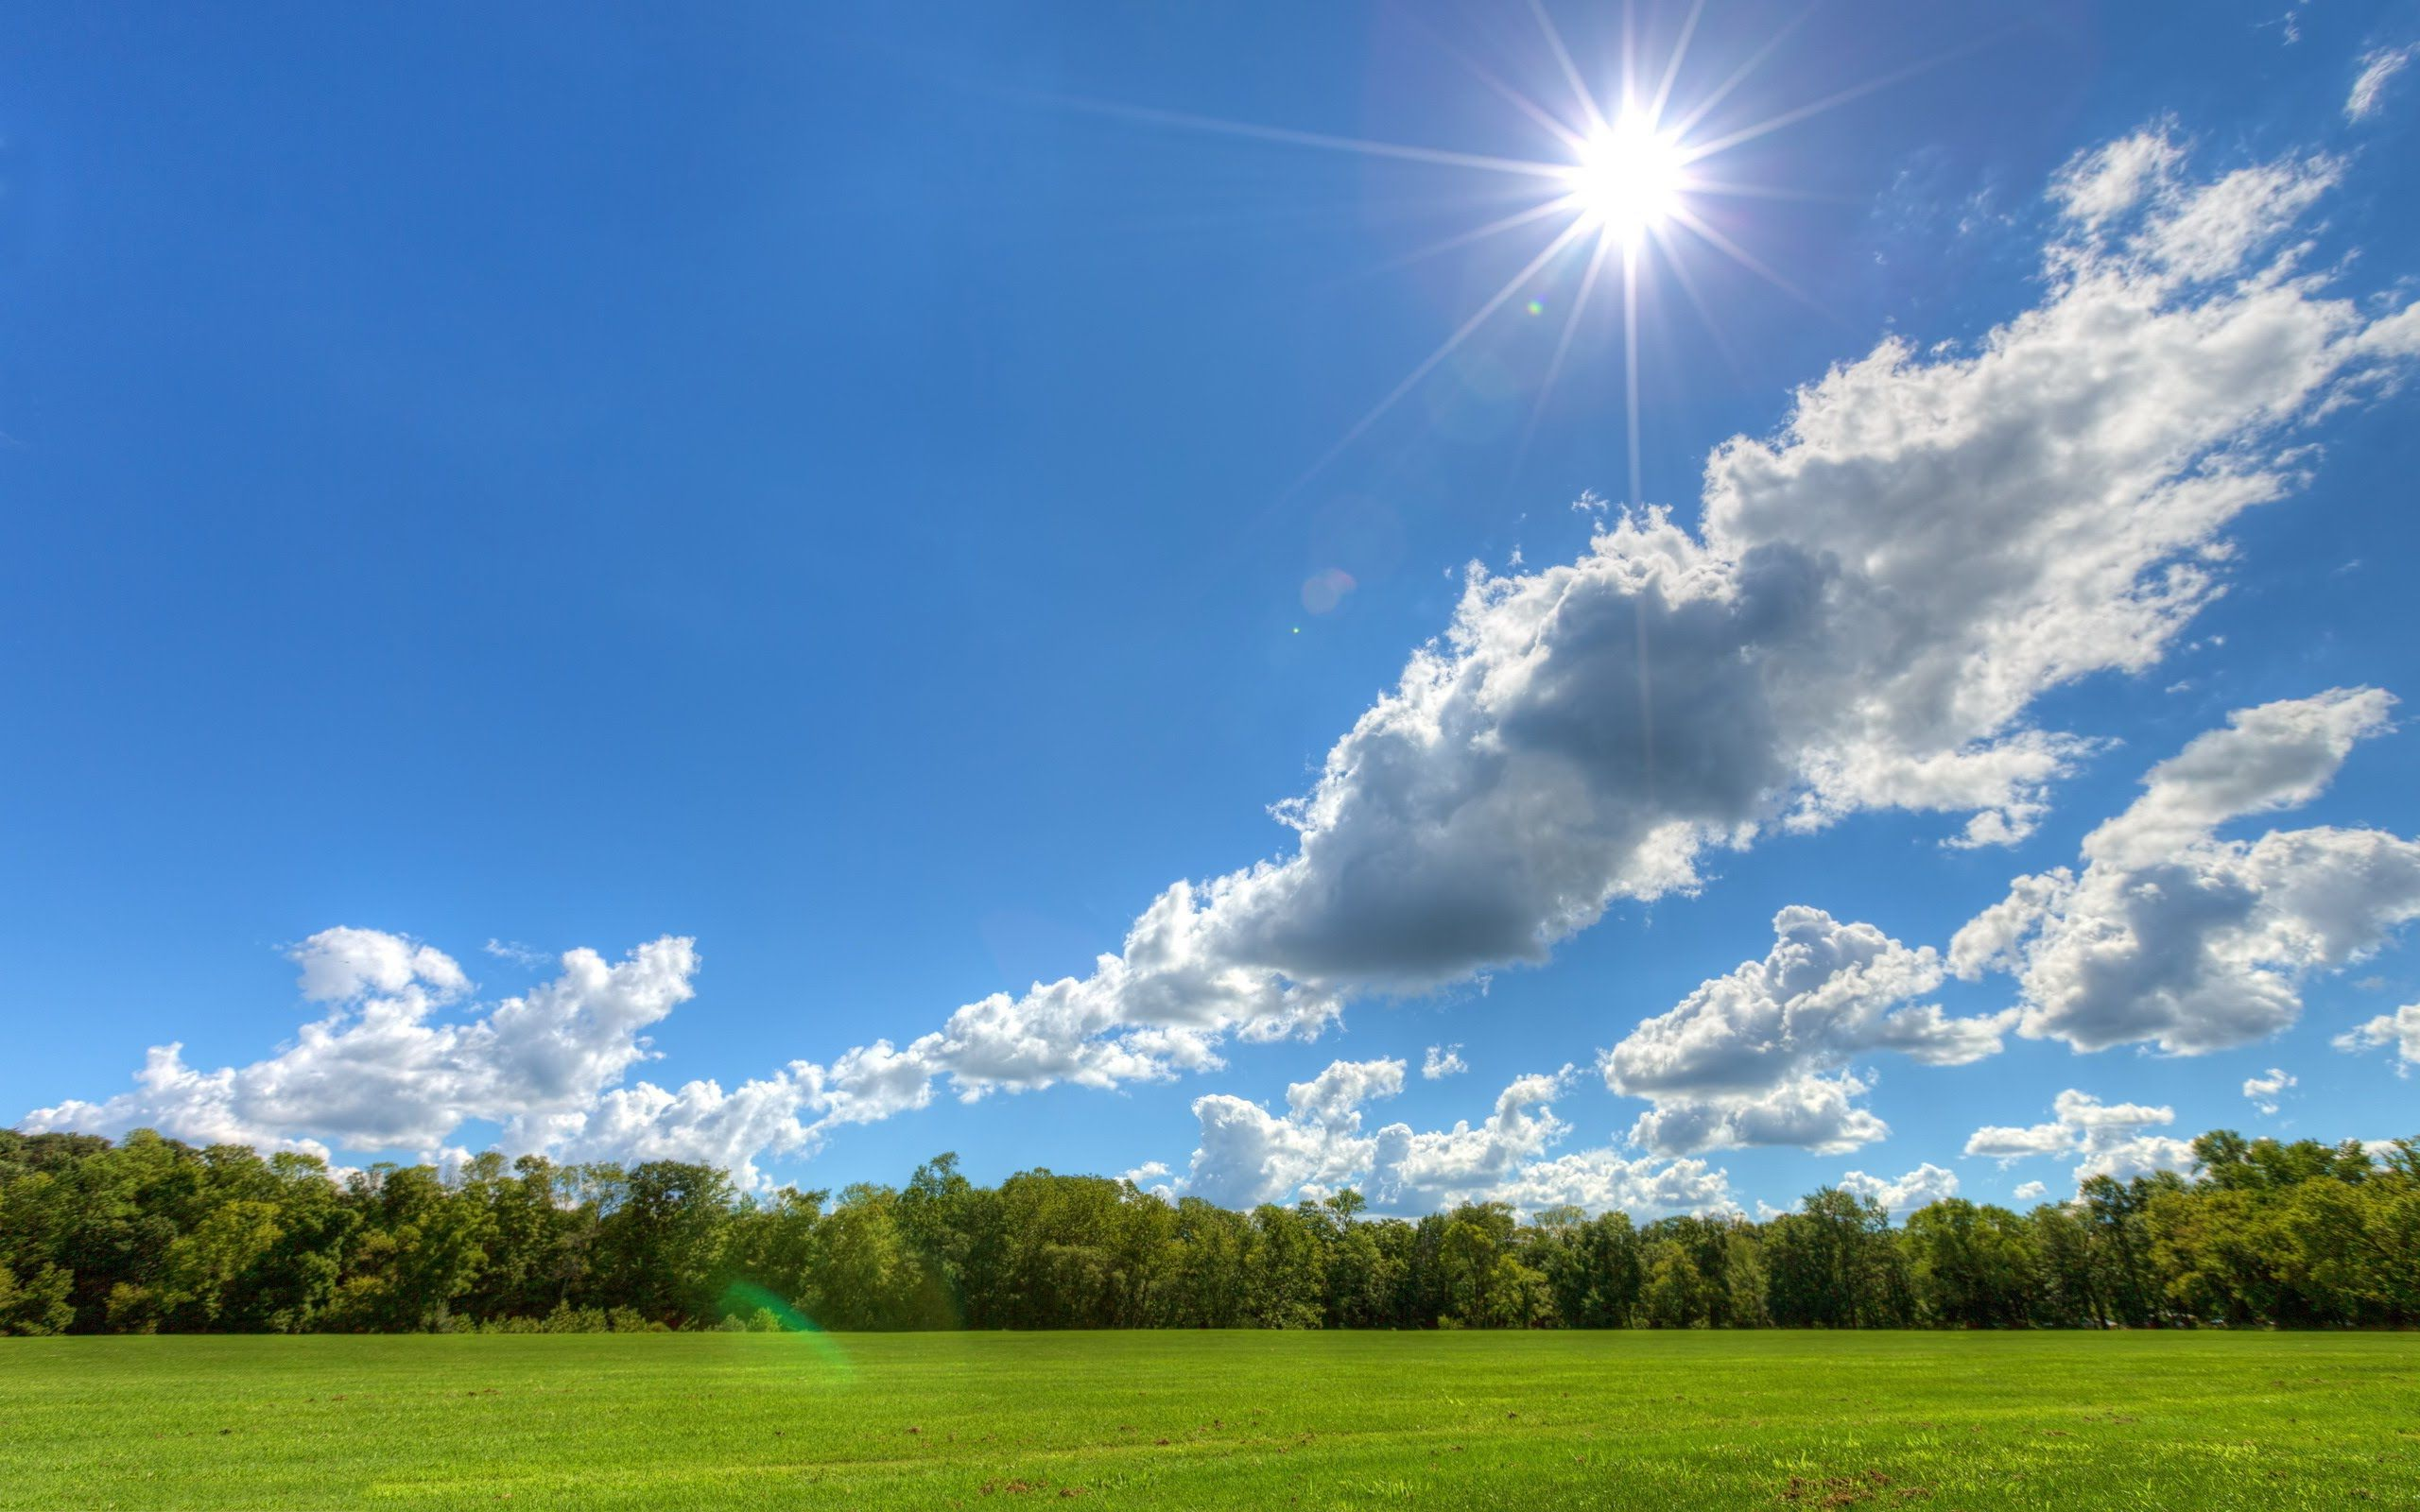 It S A Beautiful Day Today Enjoy Everyone And Don T Forget The Sun Cream Sunny Pictures Clouds Tree Desktop Wallpaper